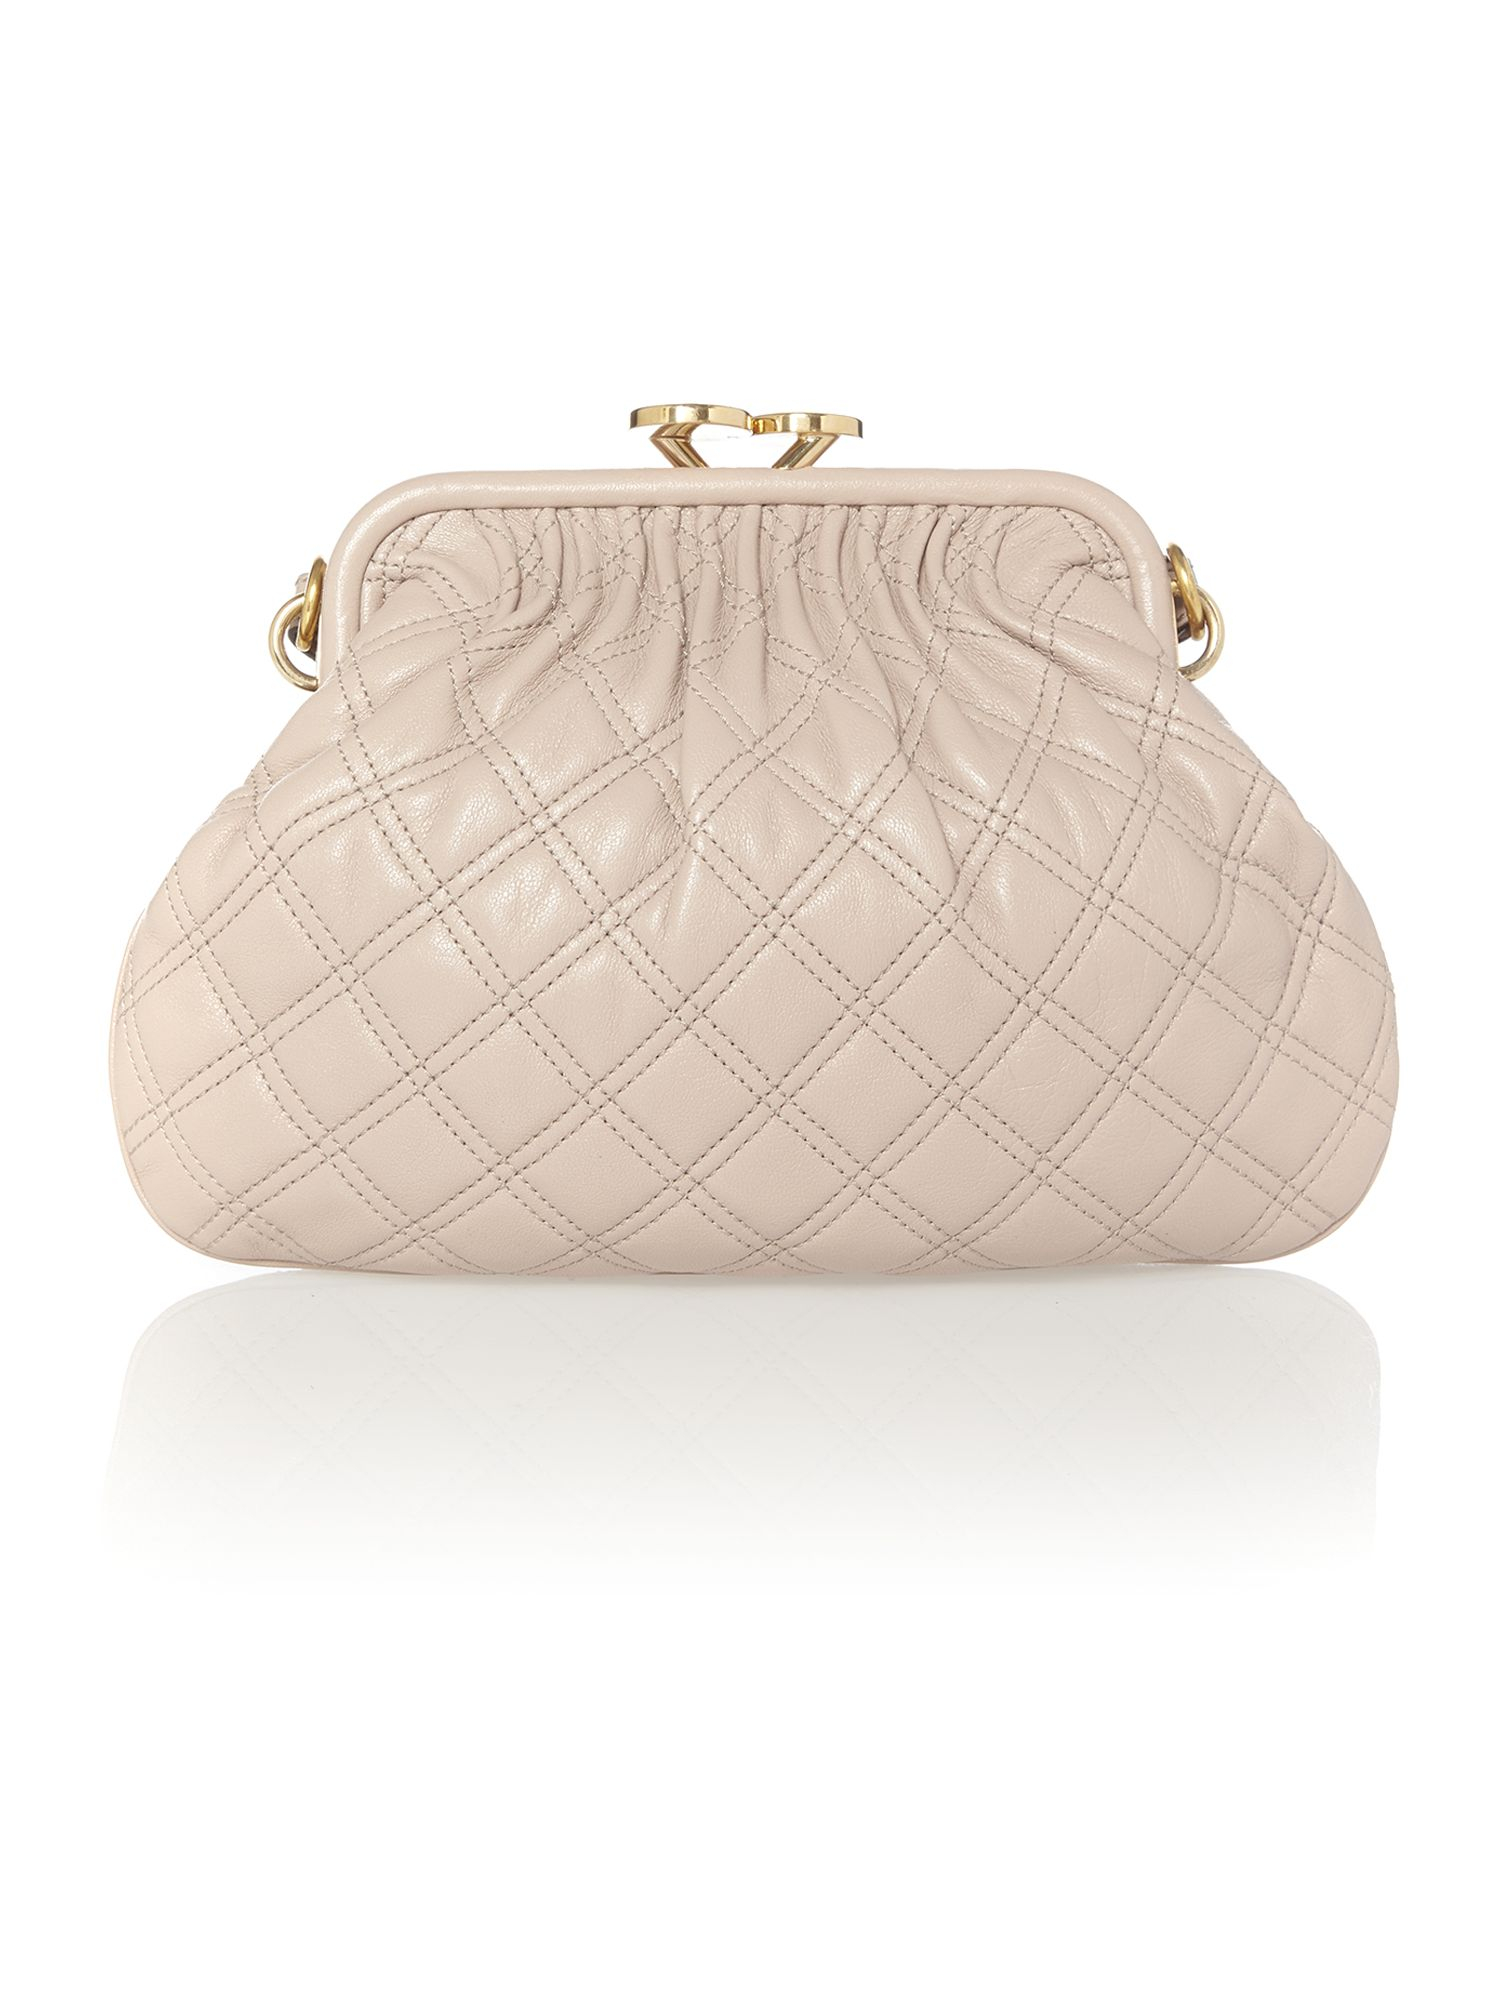 Iconic Quilted Crossbody Bag Tapestry Shoulder Bag